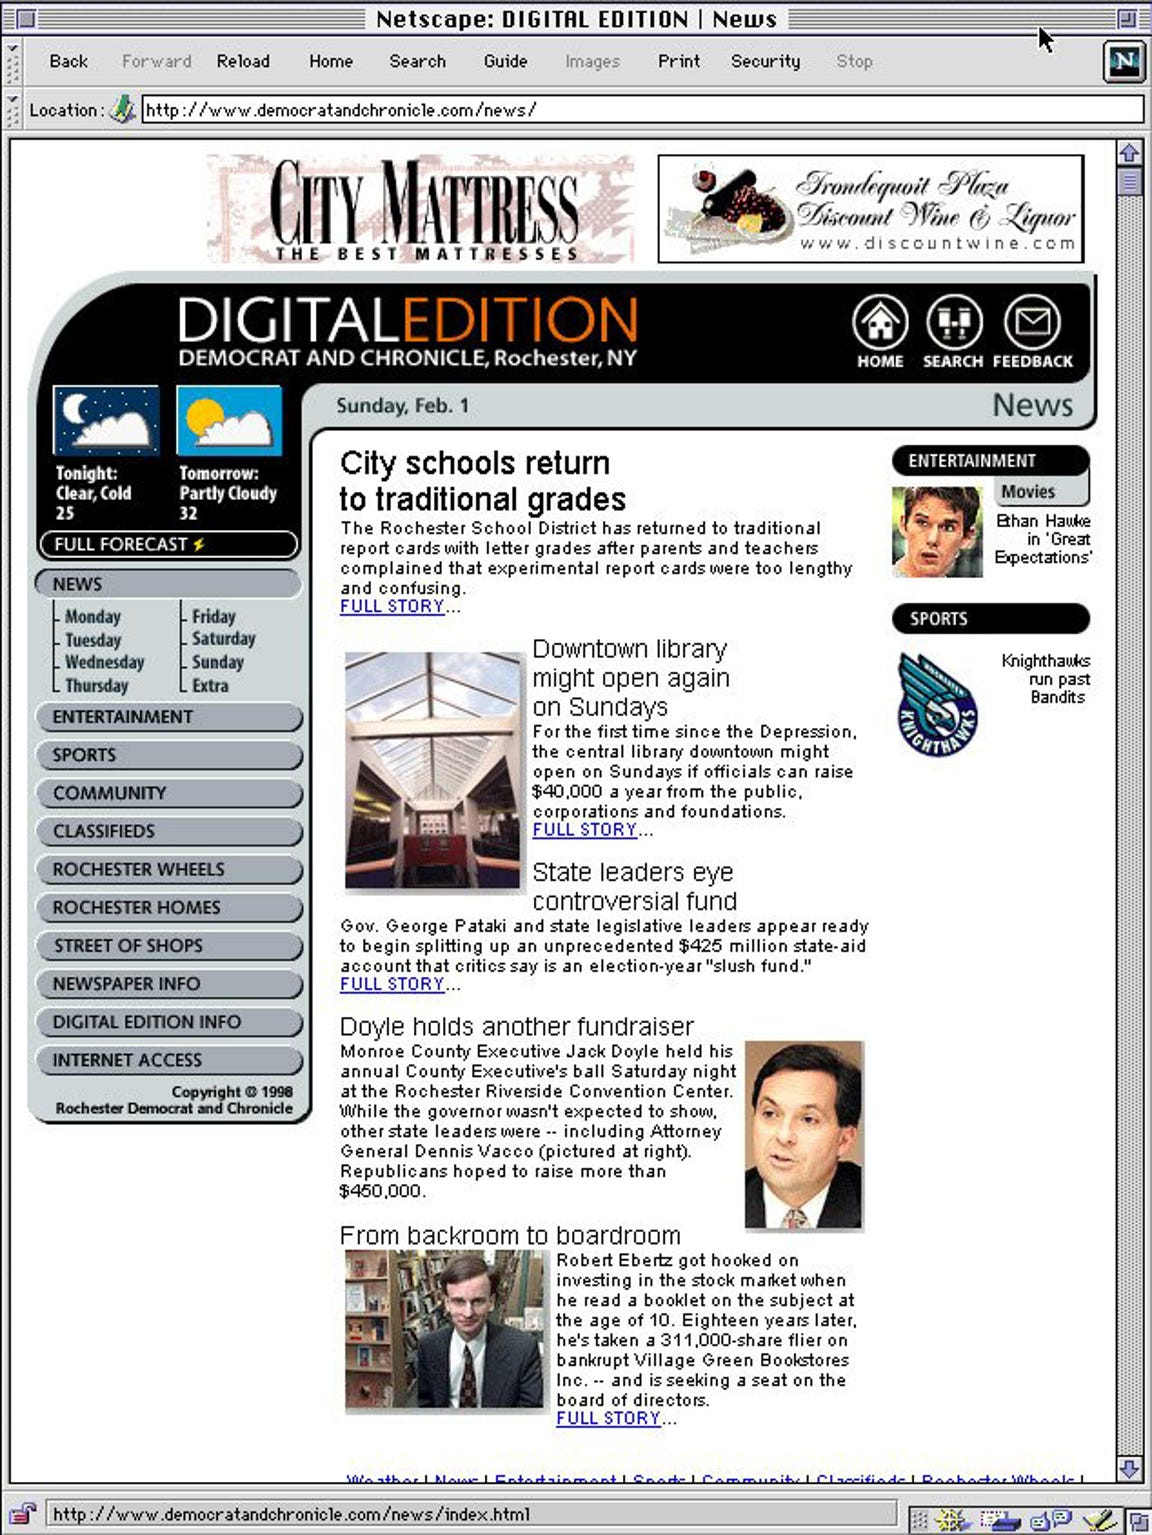 The homepage of the Democrat and Chronicle's Digital